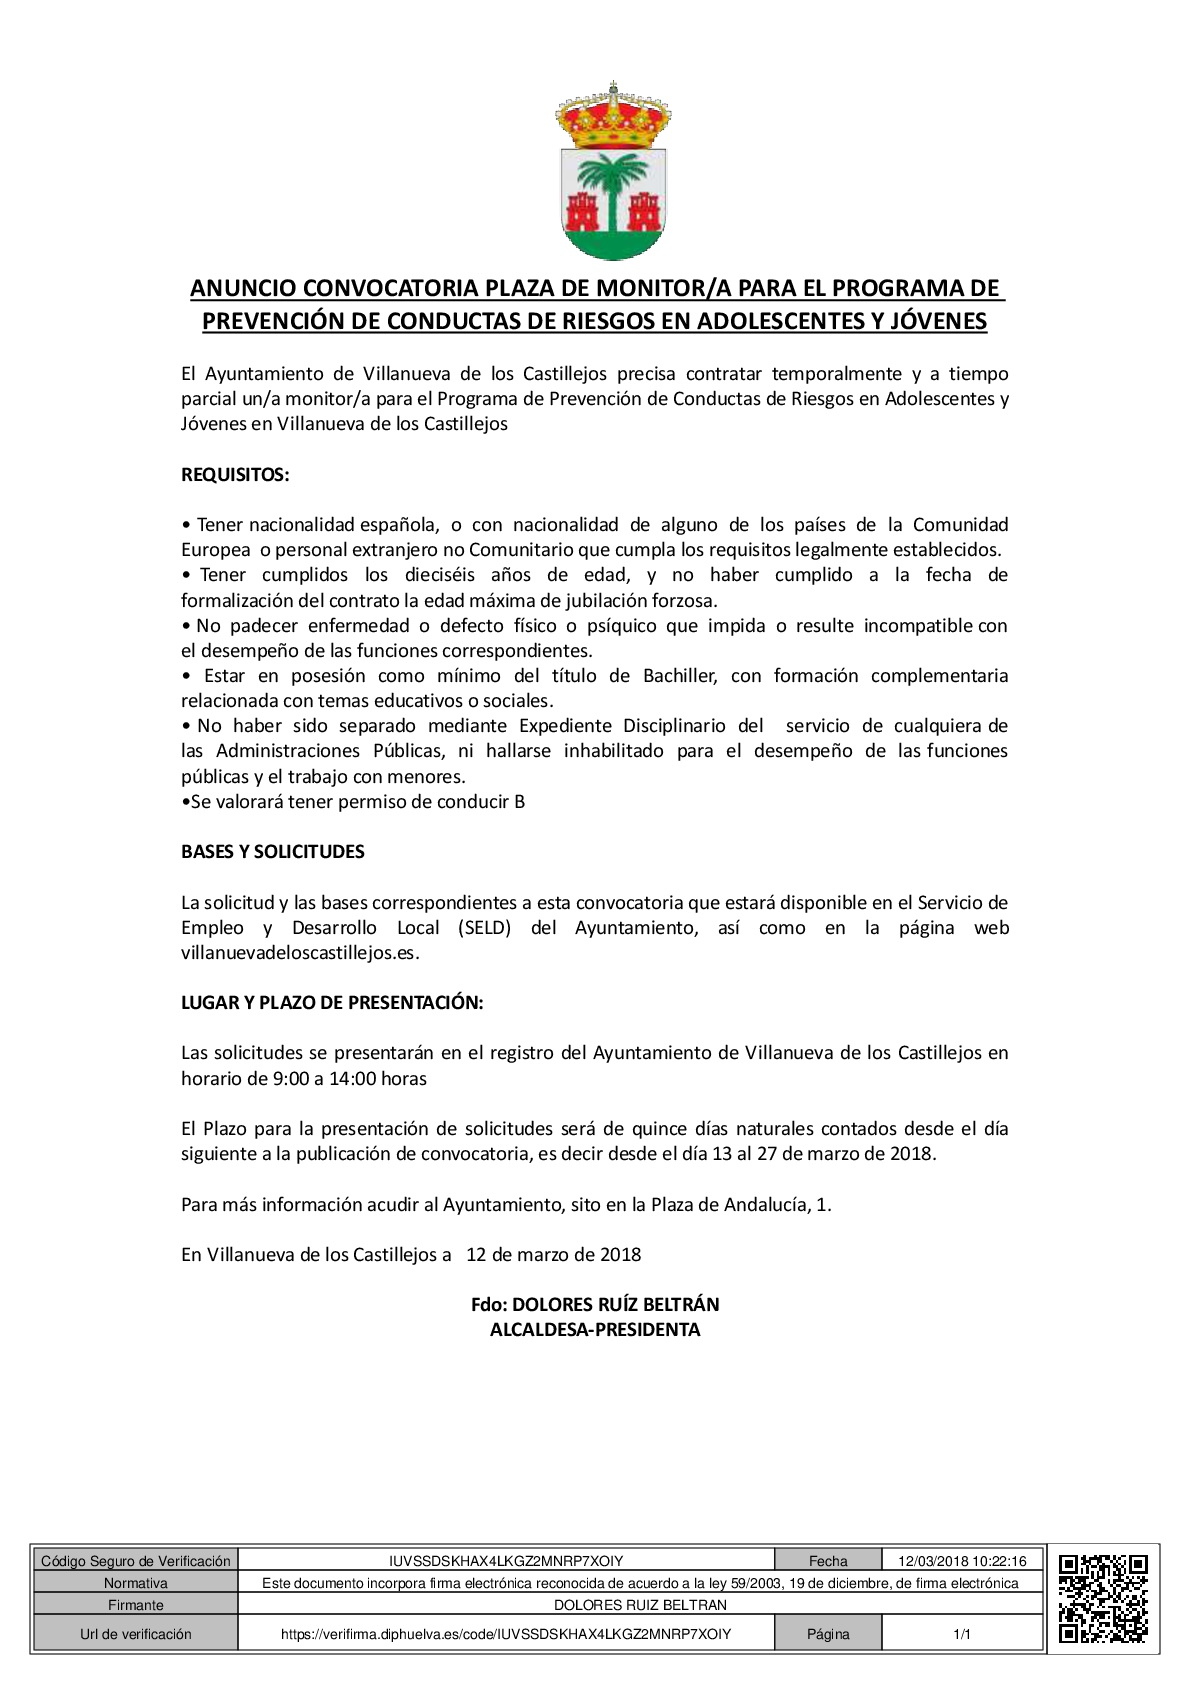 ANUNCIO CONVOCATORIA PLAZA DE MONITOR PREVENCION-001